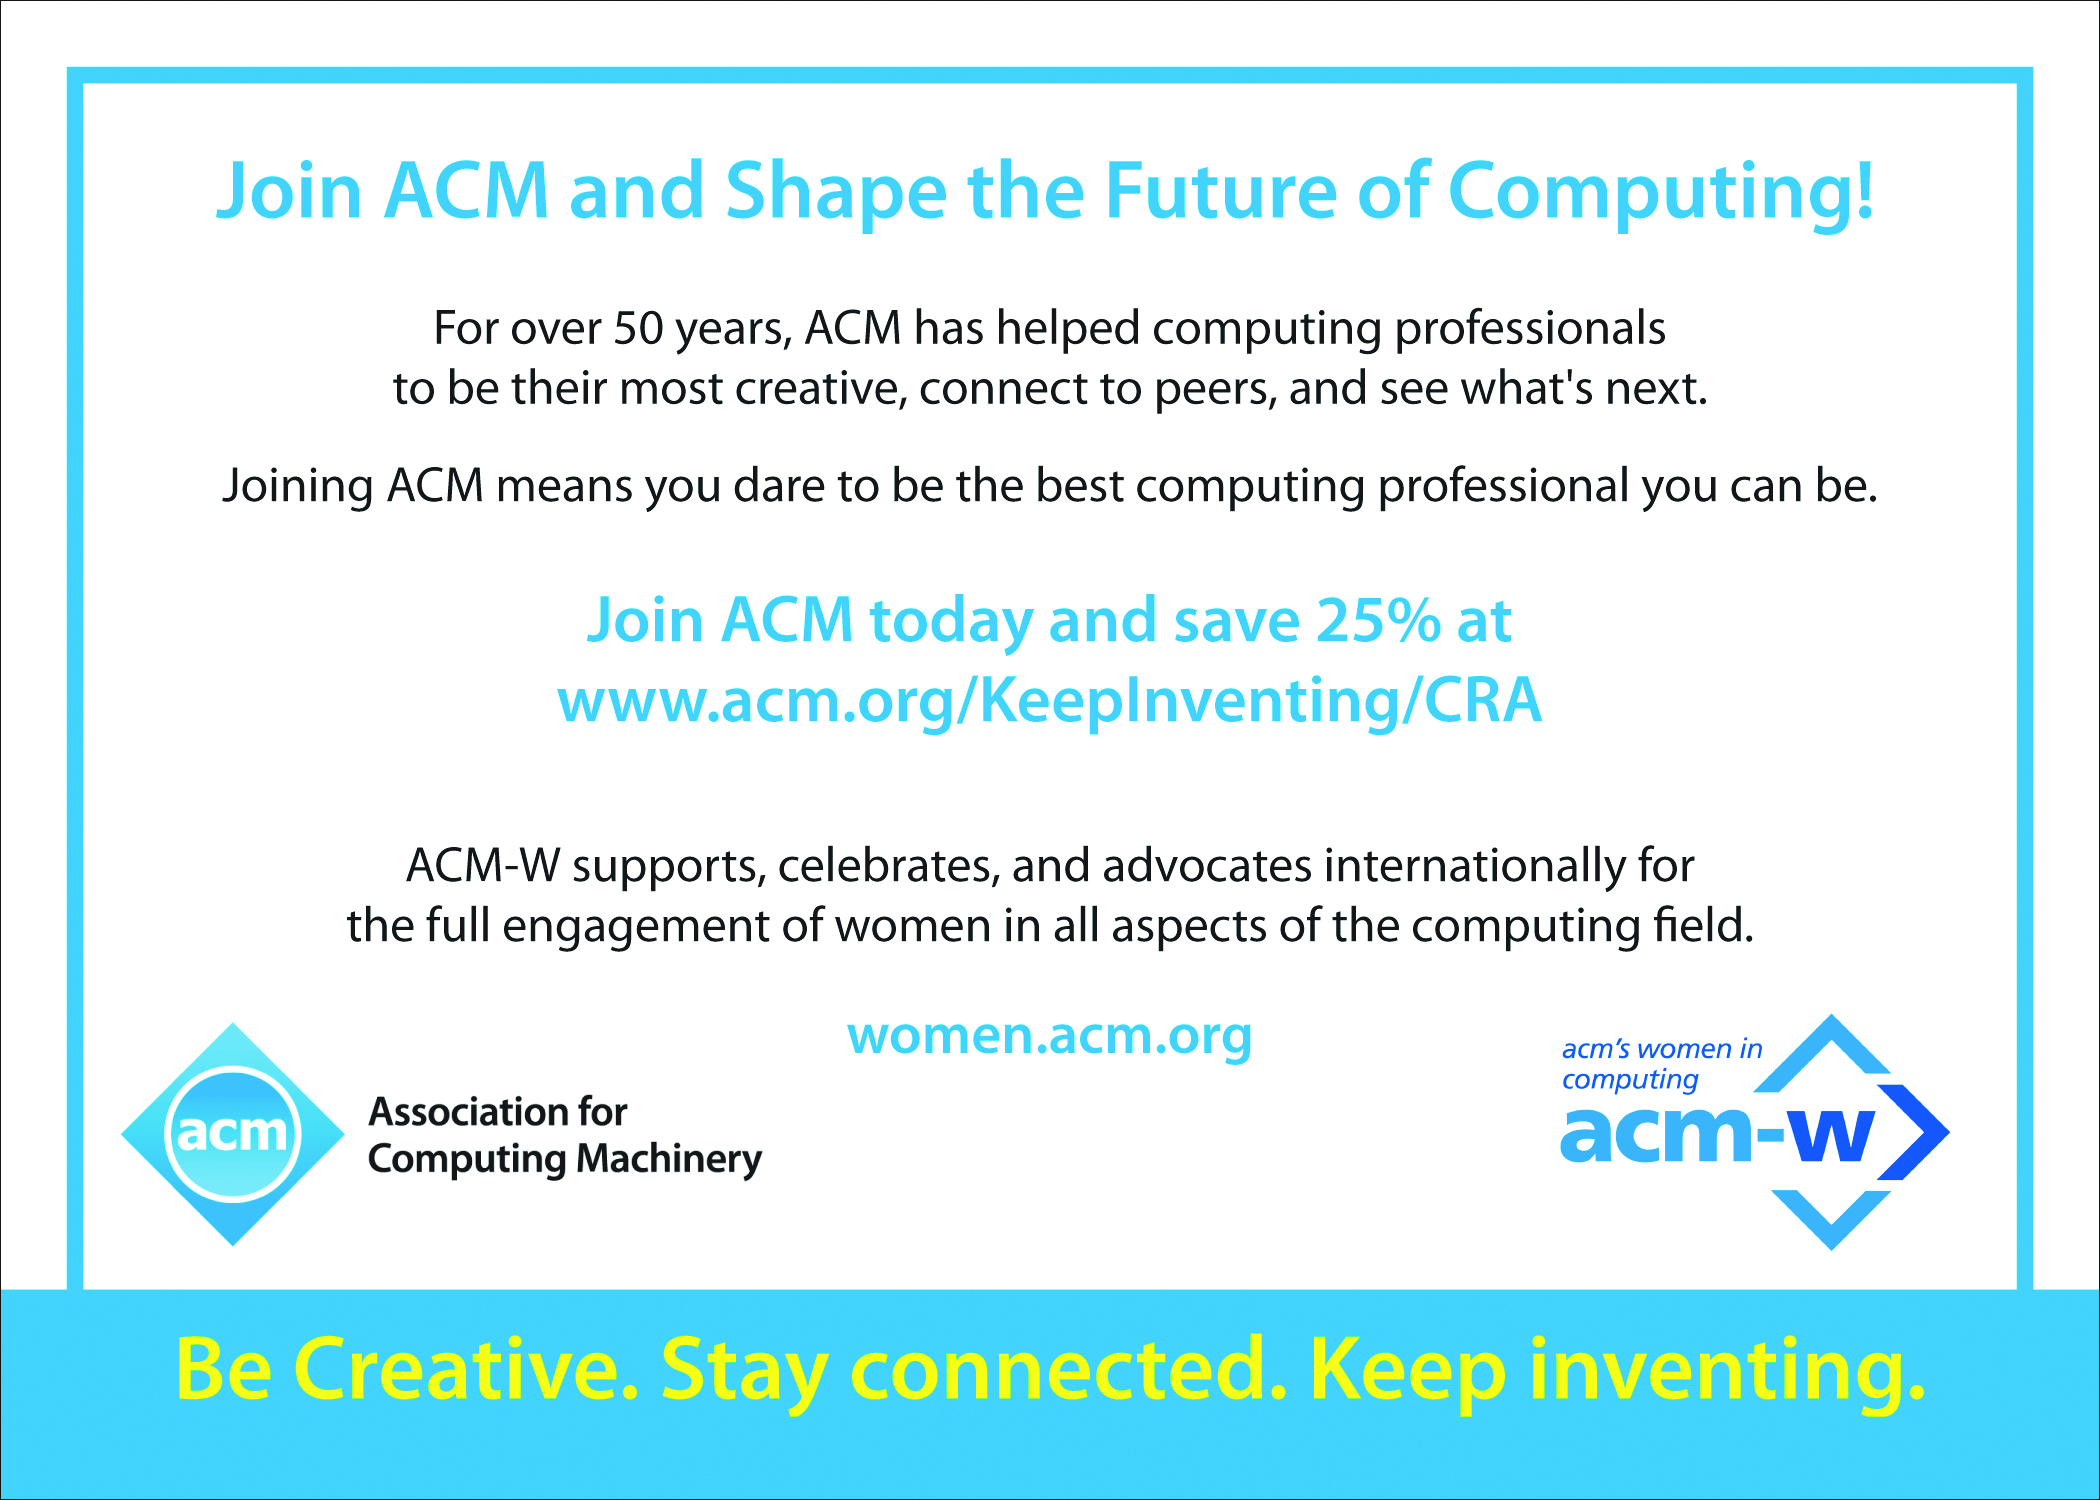 ACM ad for CRN